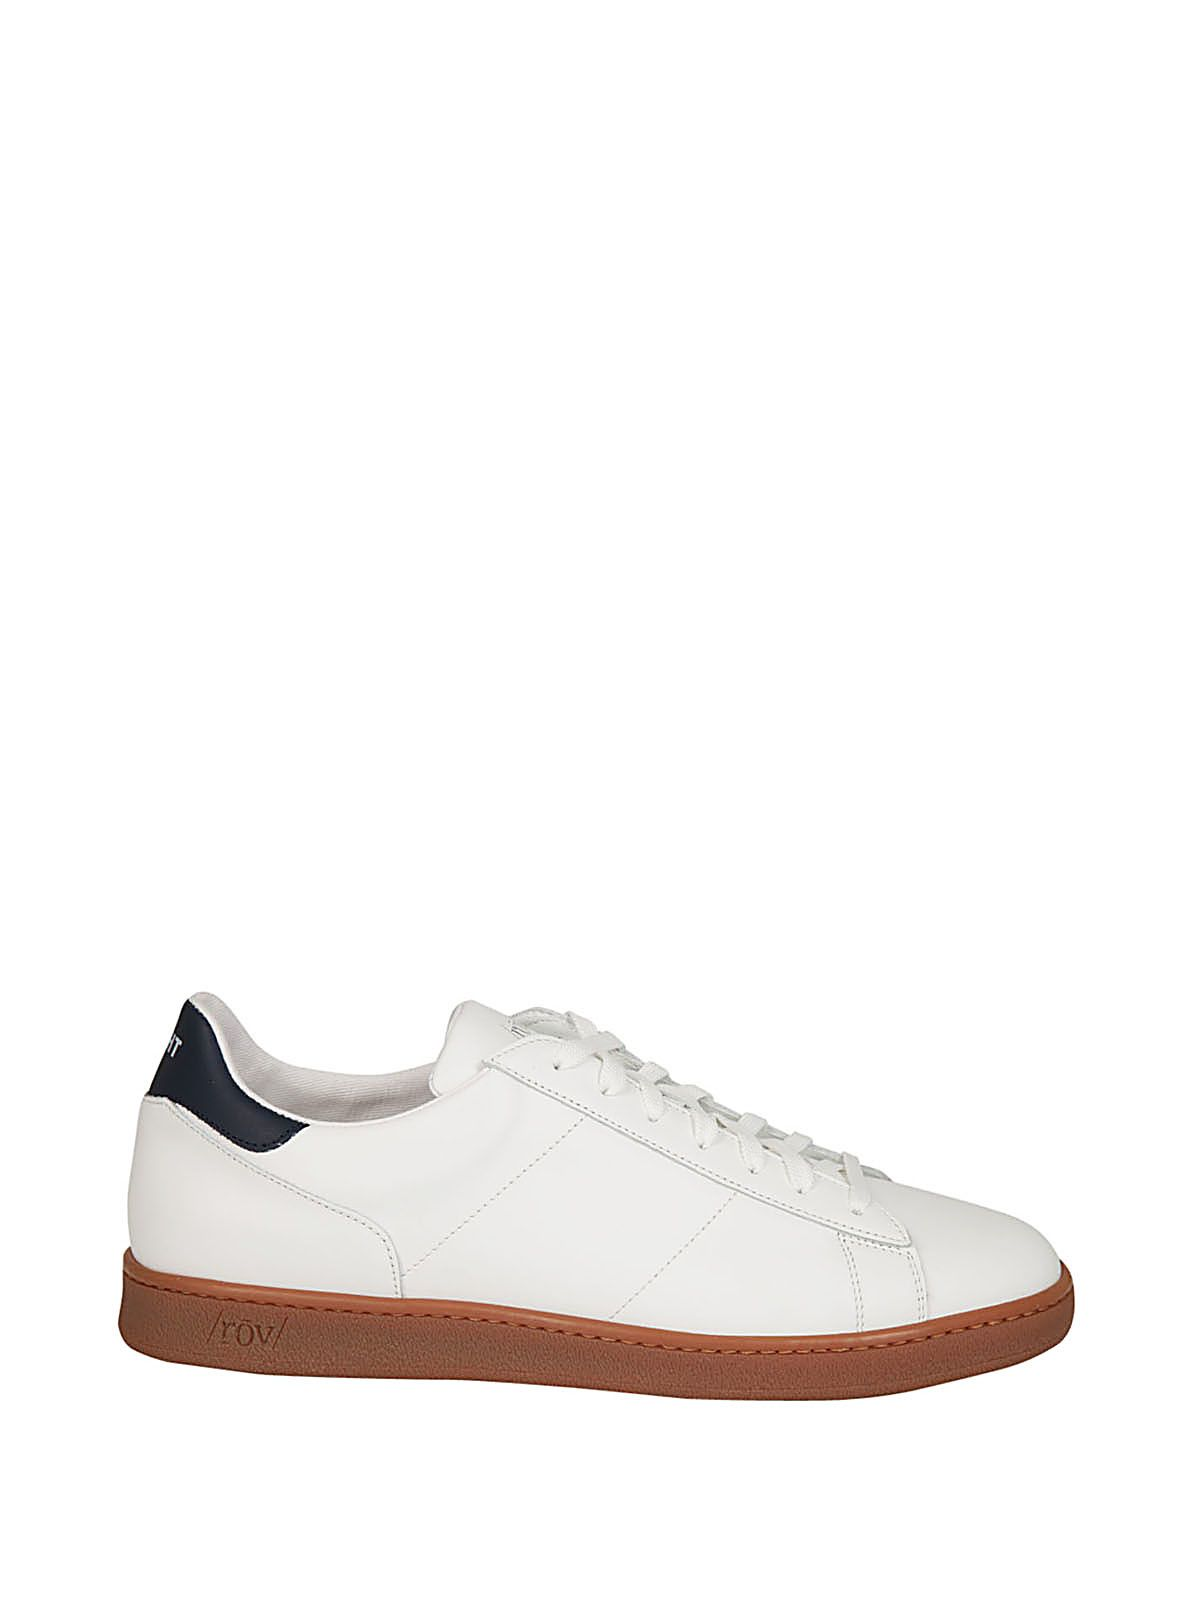 Rov Classic Sneakers